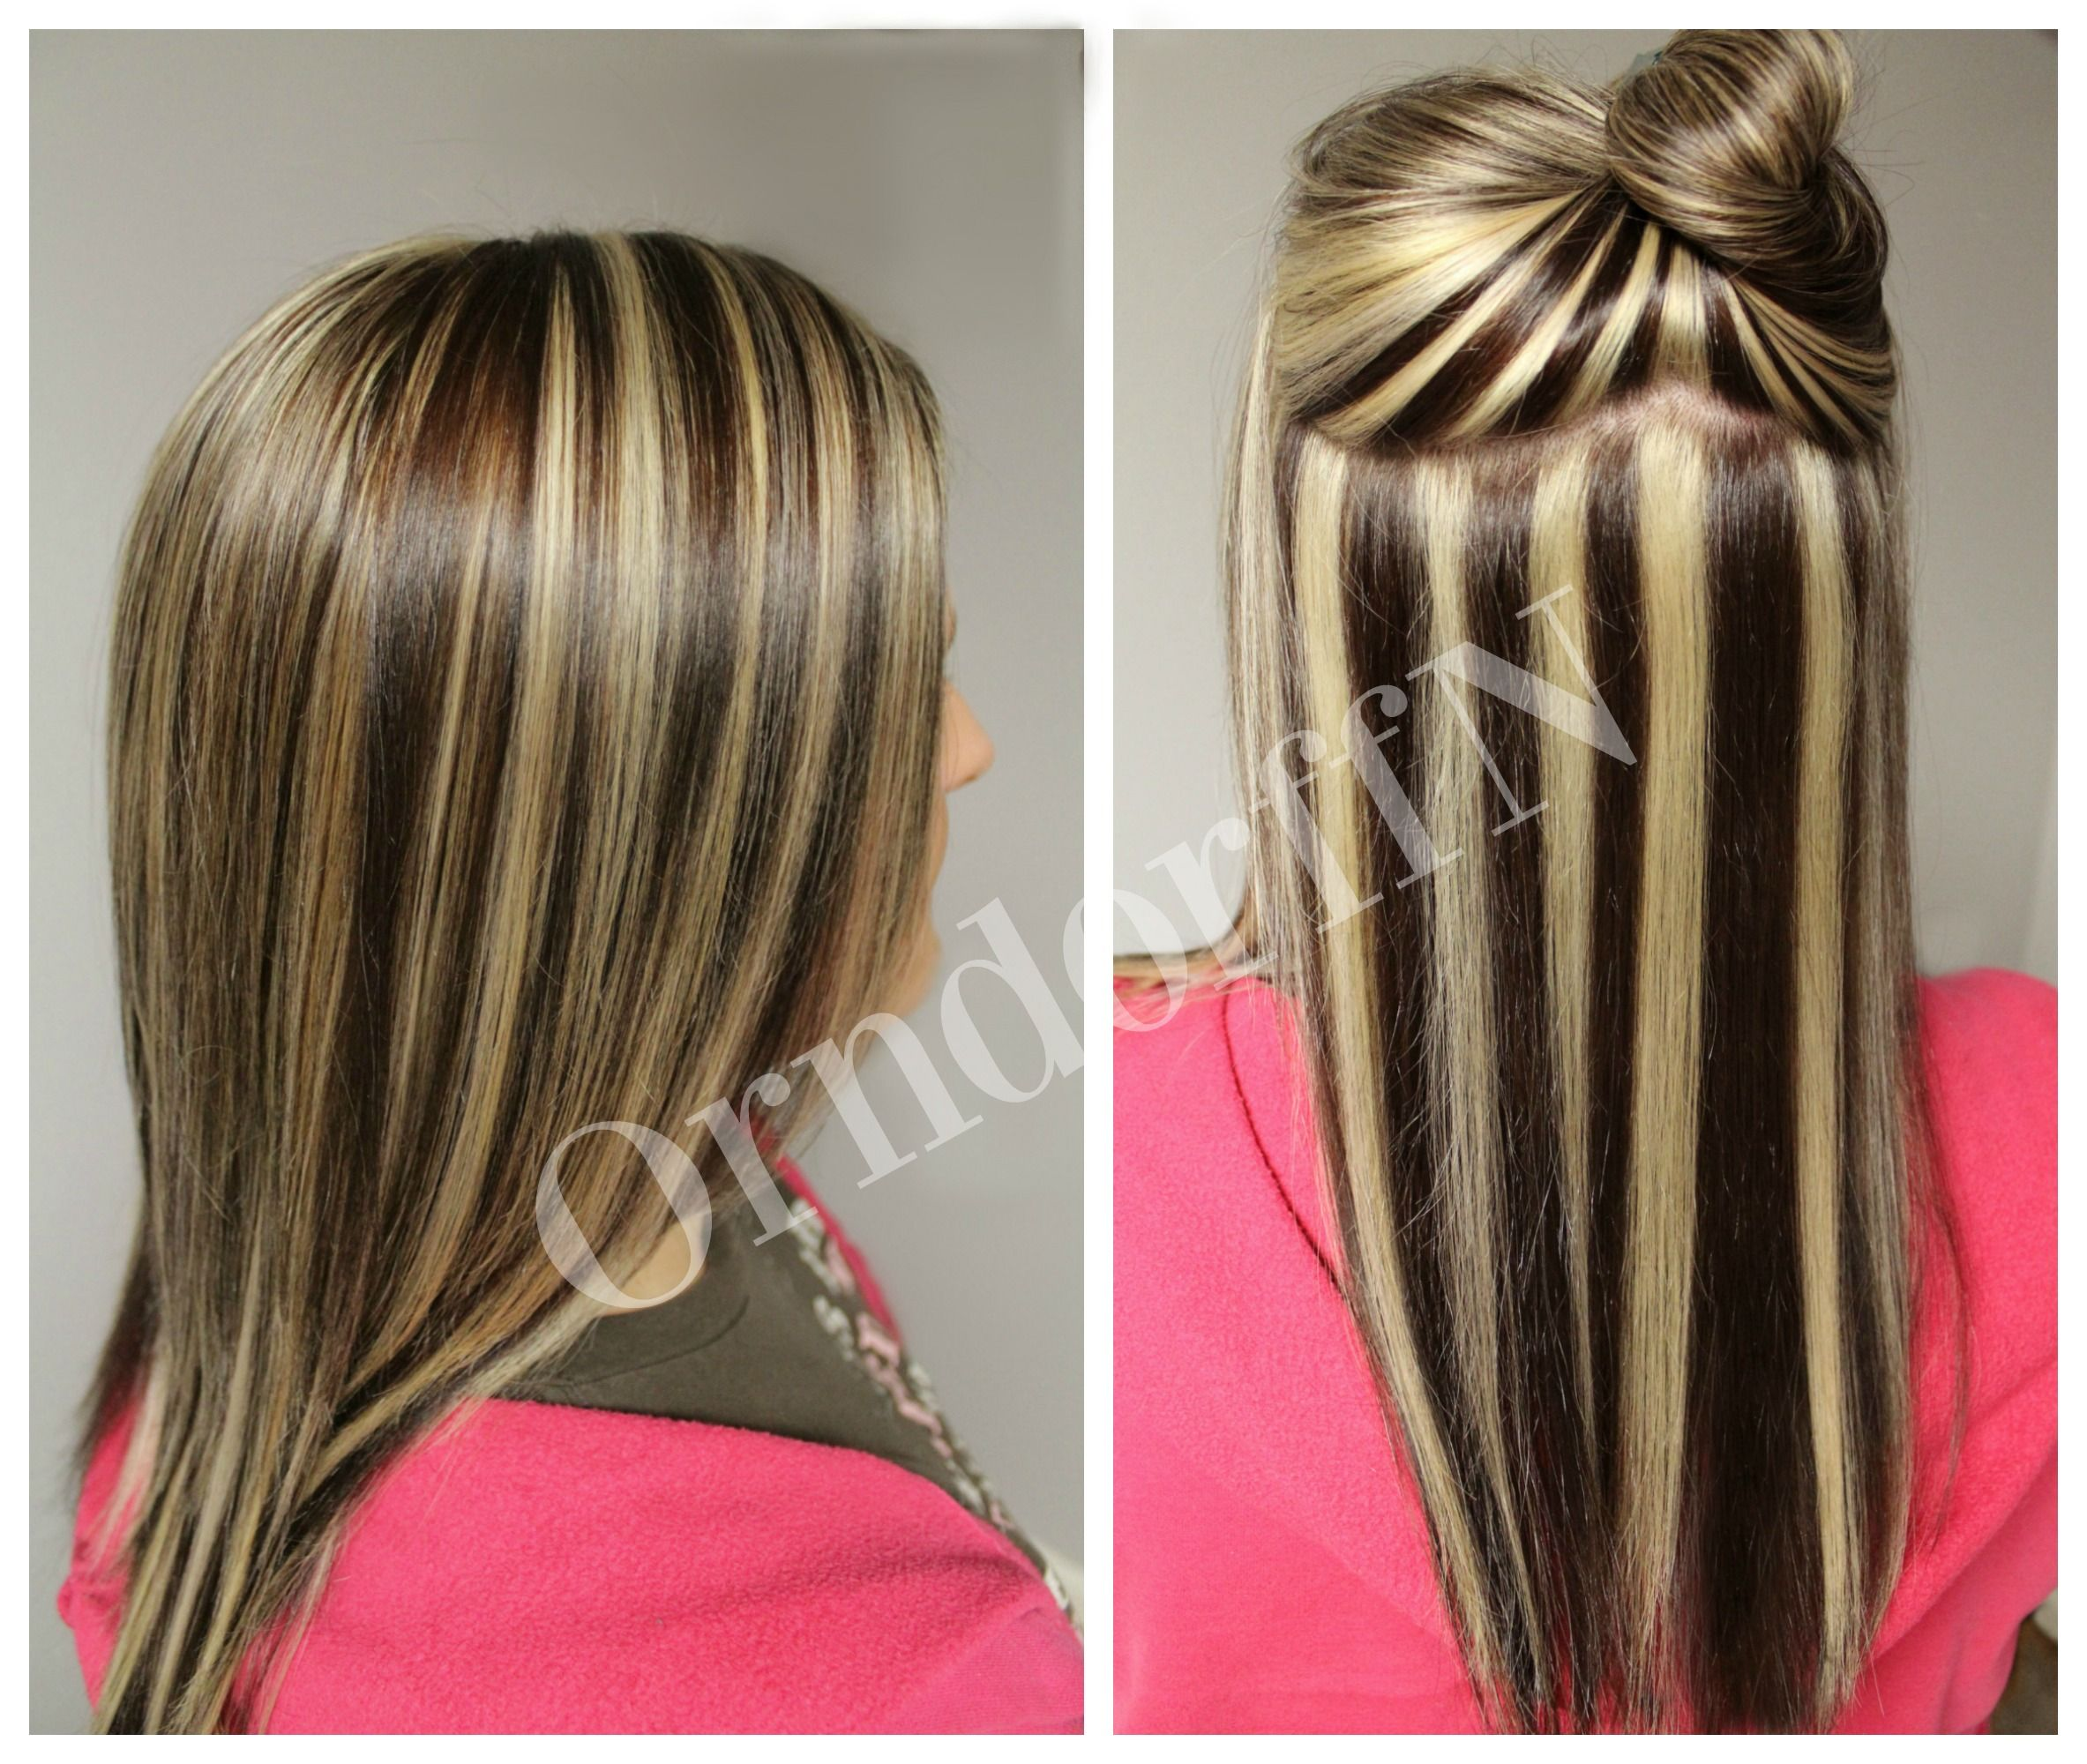 60 hairstyles featuring dark brown hair with highlights blonde blonde chocolate brown chunkyhighlights 3 ruskwellahair pmusecretfo Choice Image